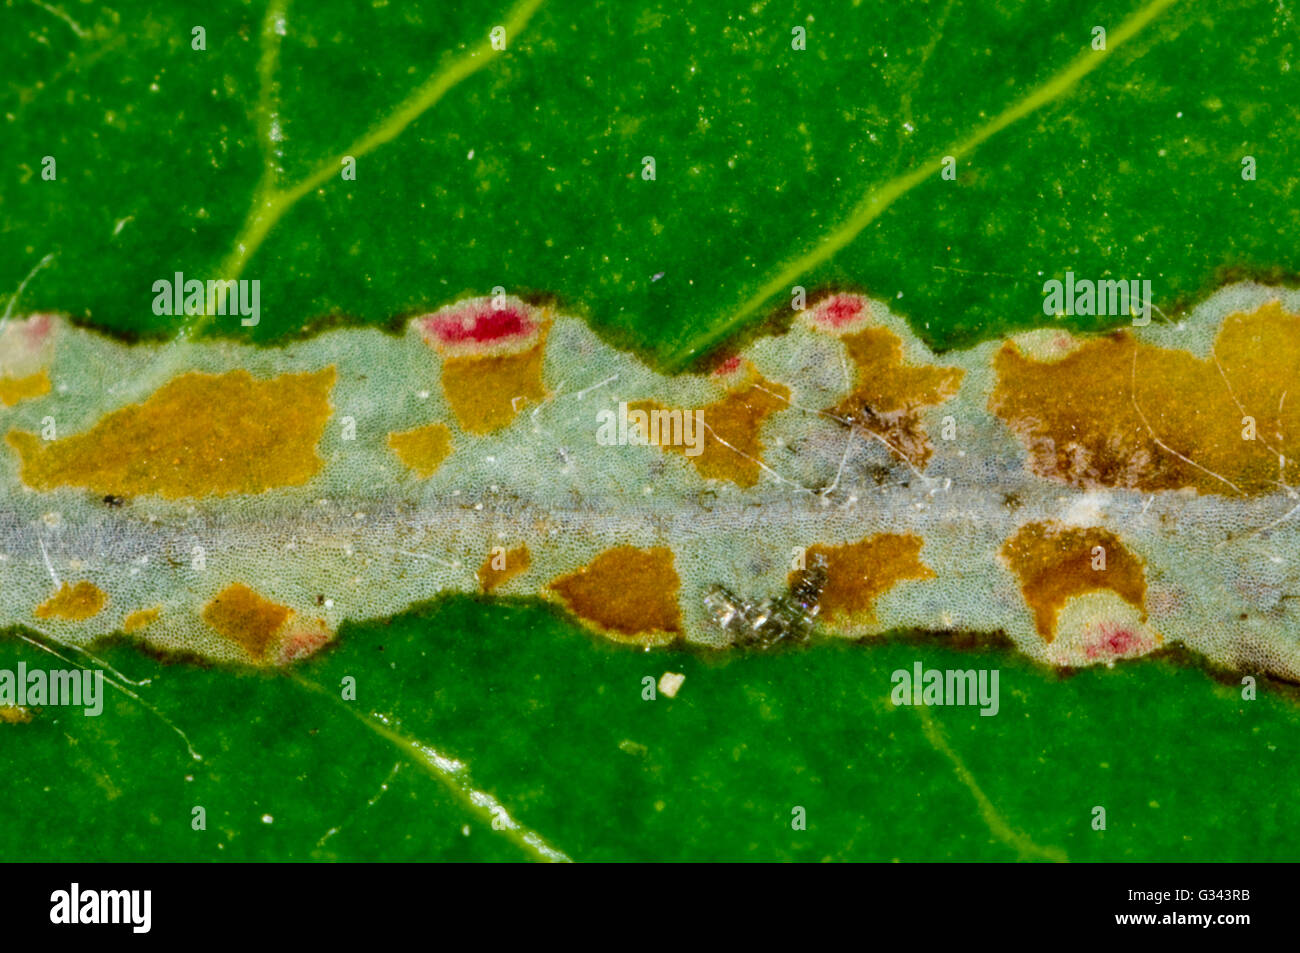 Firethorn or Pyracantha leaf mining-moth, Phyllonorycter leucographella, leaf mine or galley - Stock Image